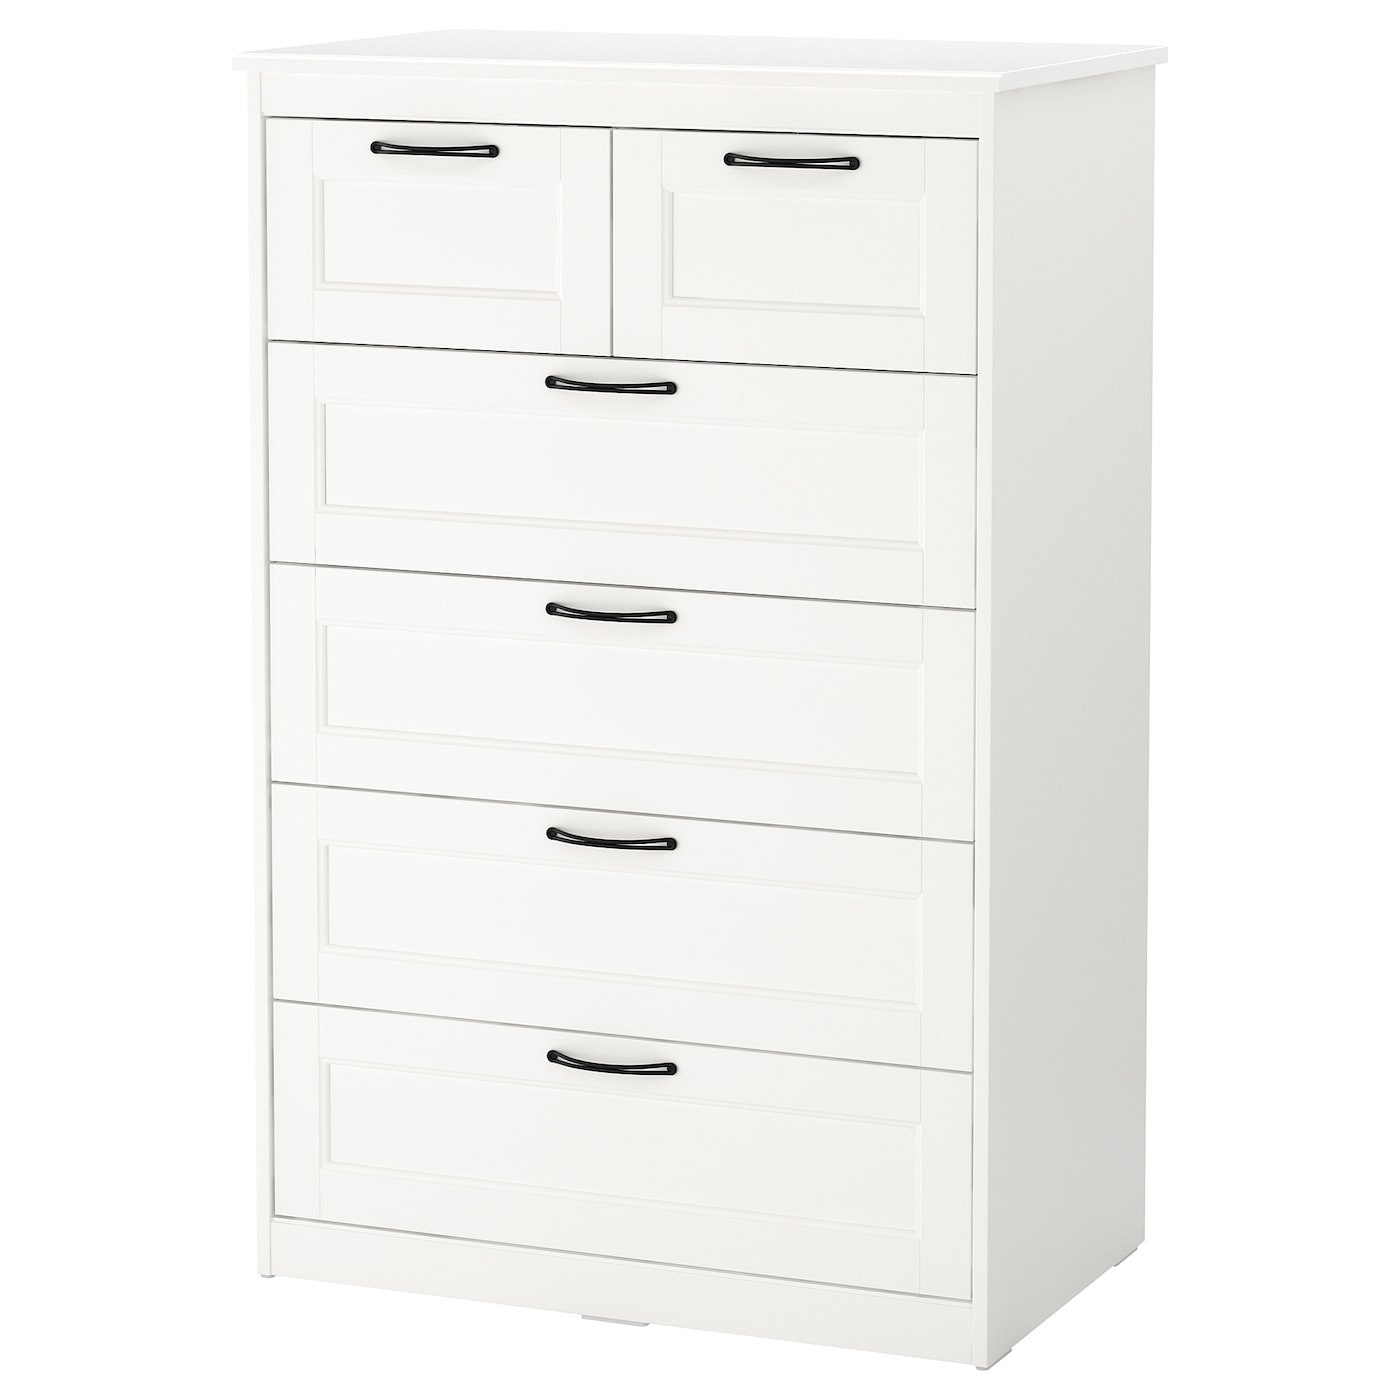 IKEA SONGESAND chest of 6 drawers Smooth running drawers with pull-out stop.